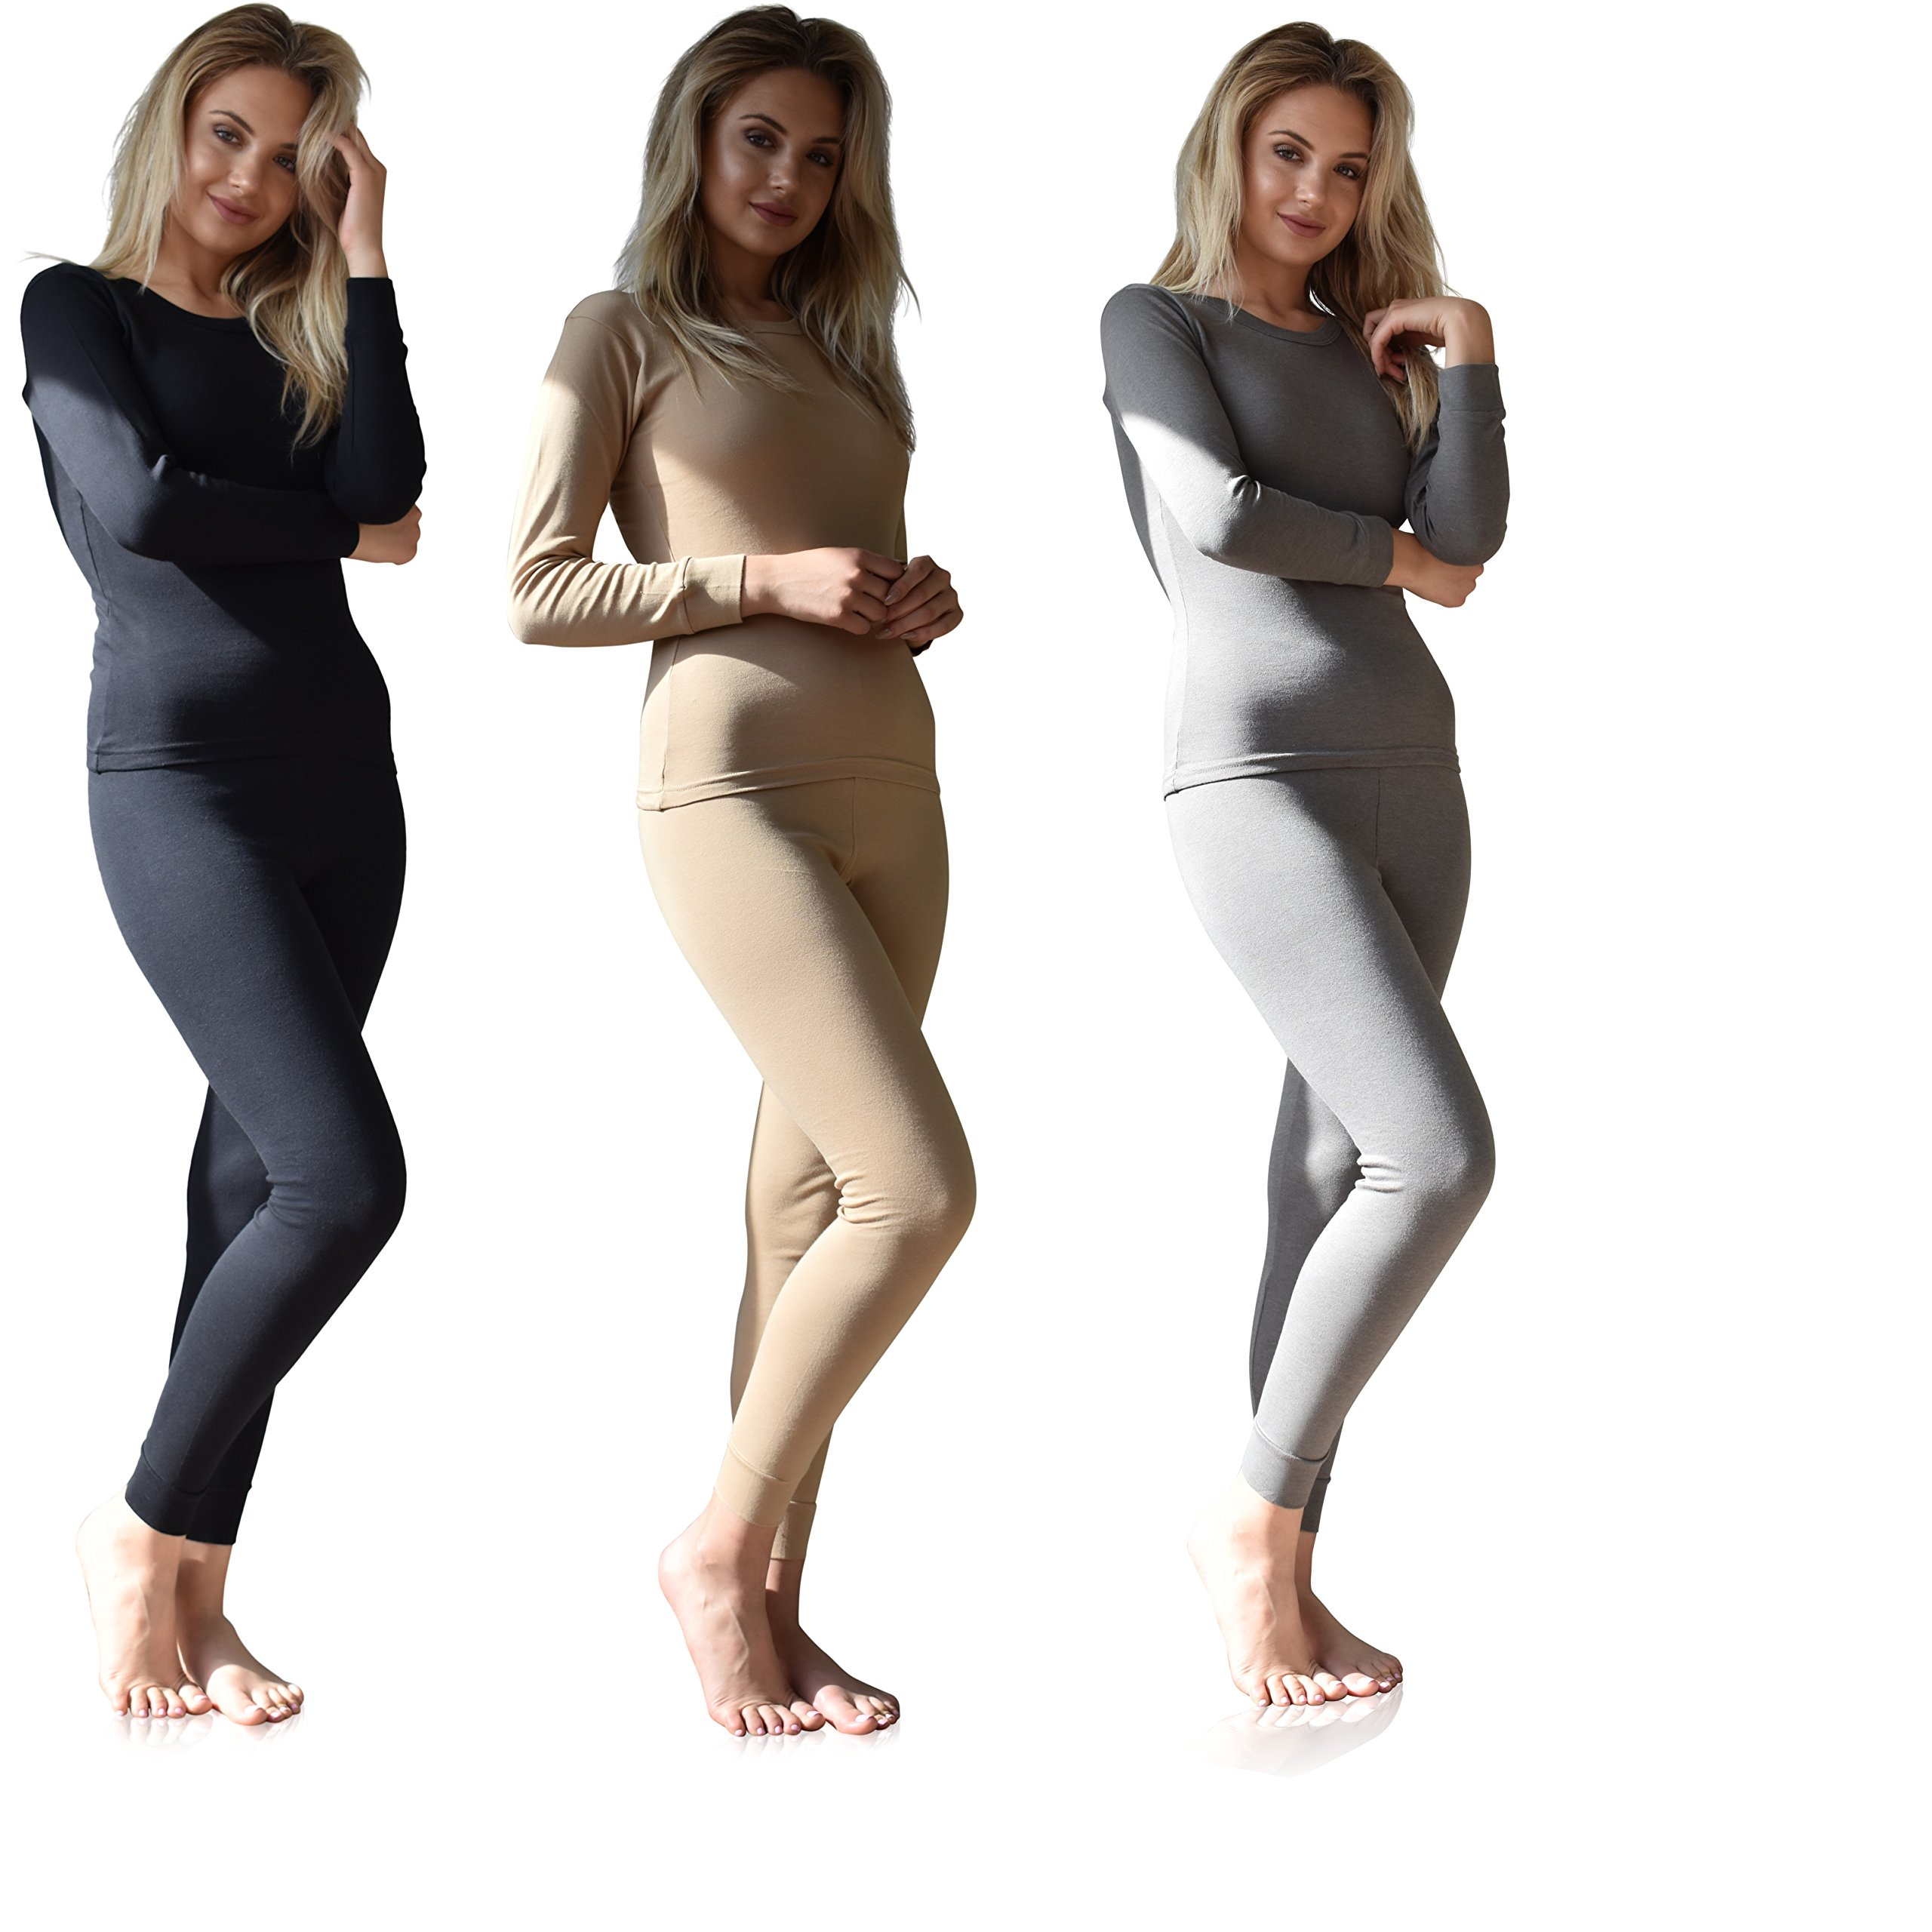 Women's Thermal Underwear Set Top & Bottom Fleece Lined Cotton (X-Large, 3 Sets Mix & Match -Black/Nude / Charcoal)